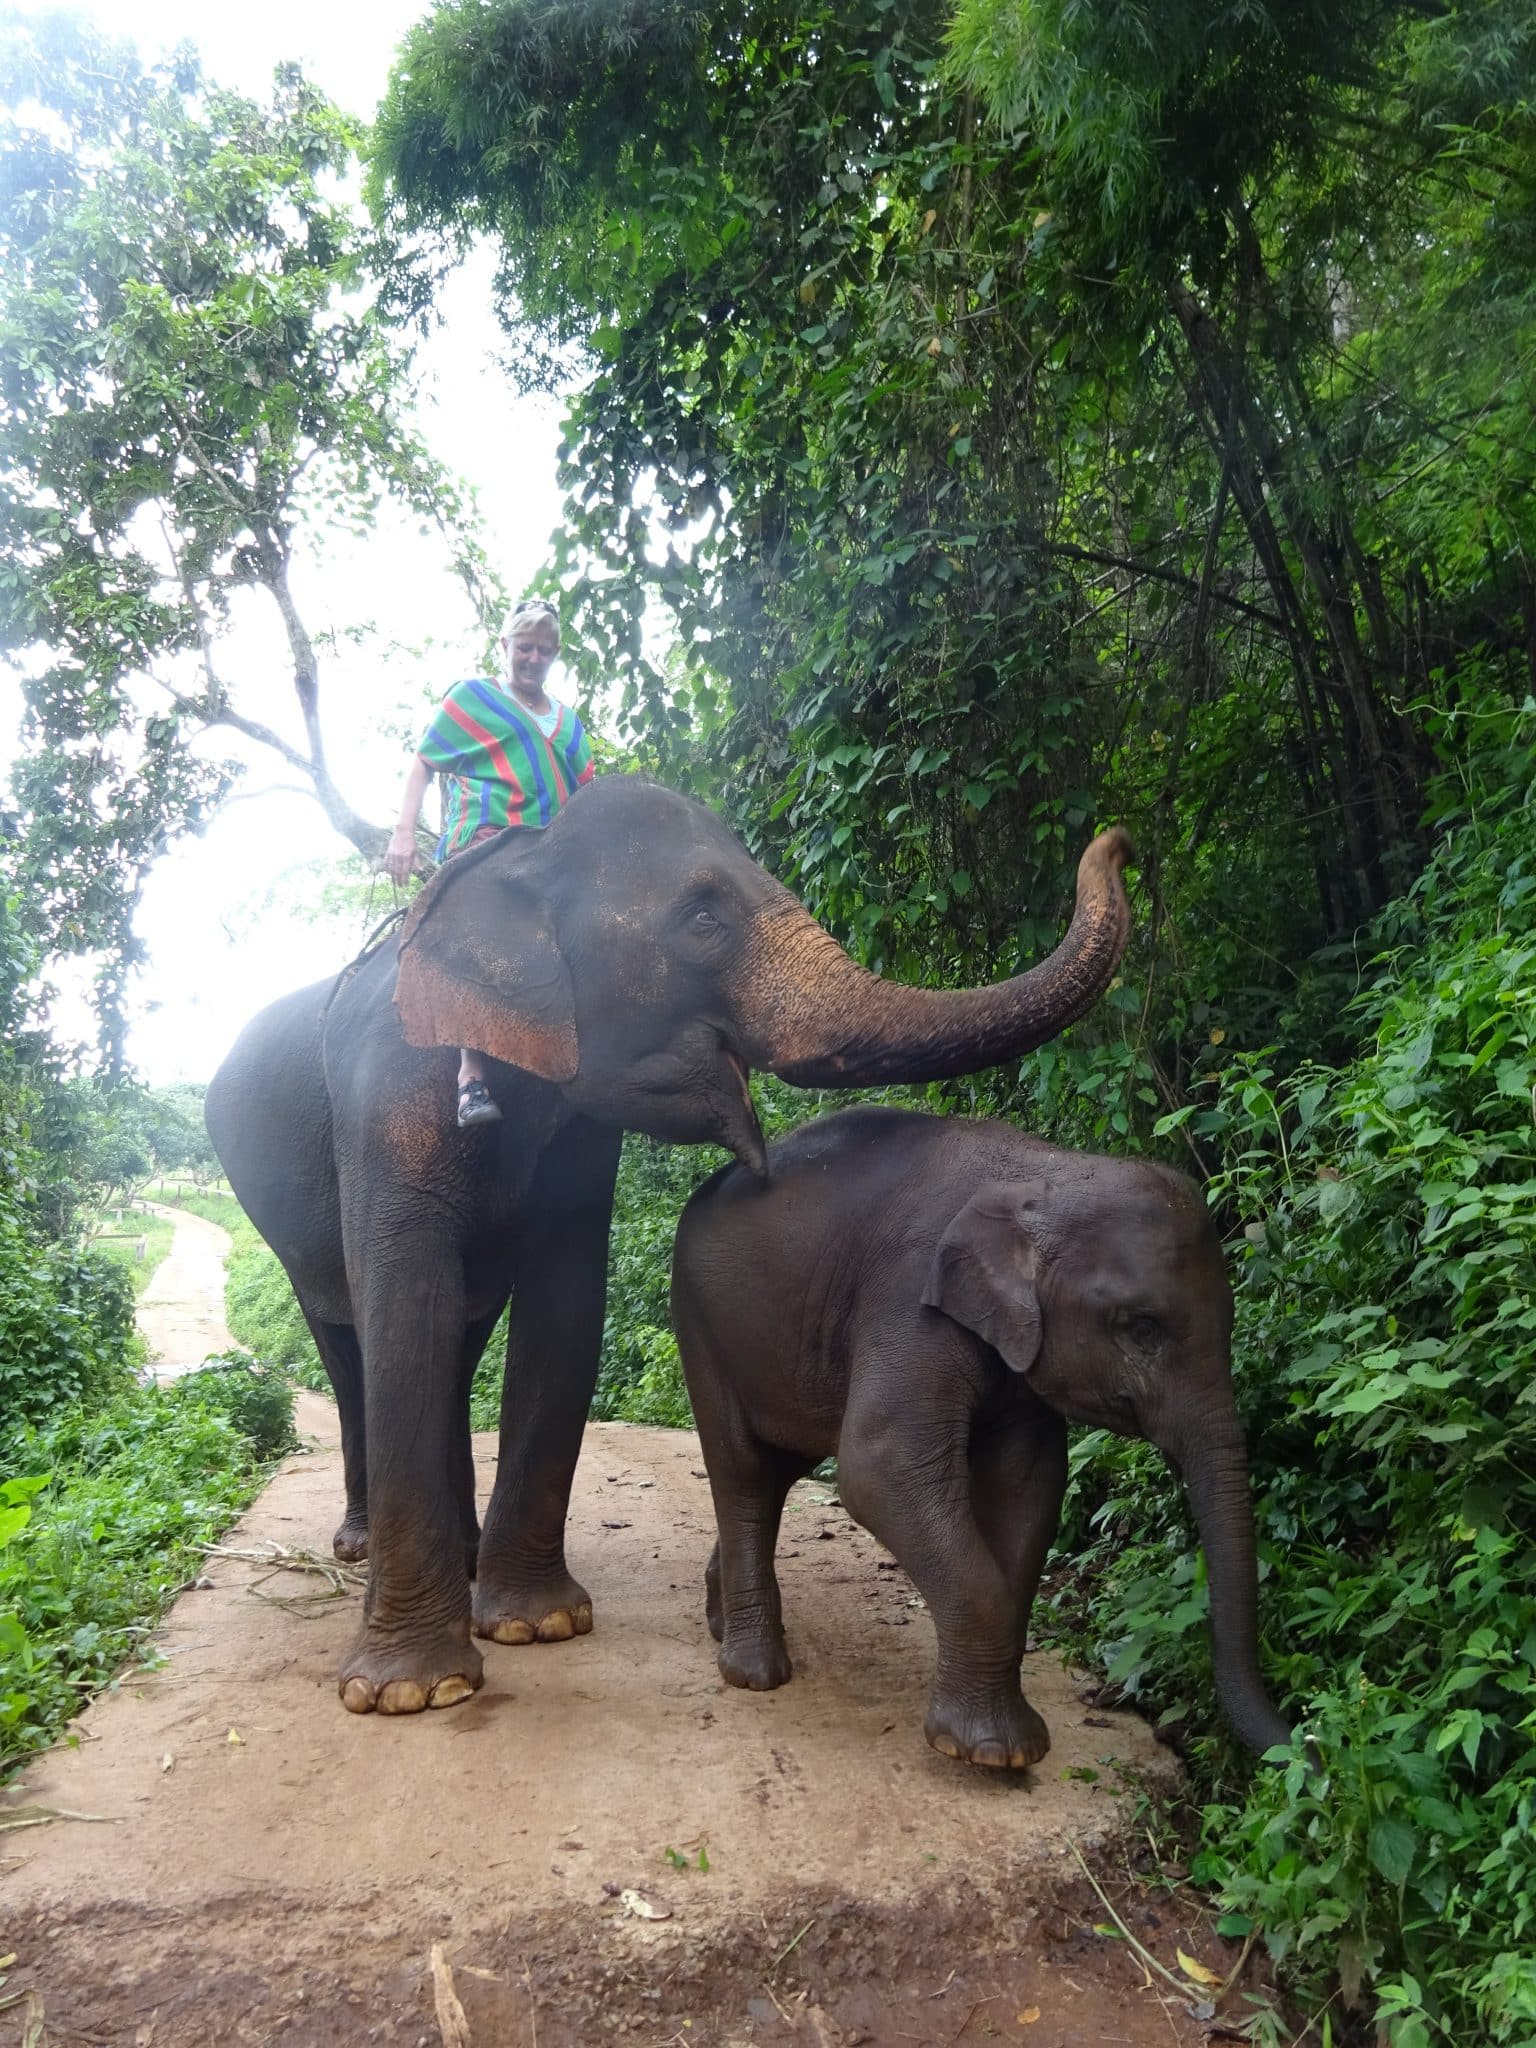 Thailand-Chang-Mai-riding-elephant-in-jungle-with-baby